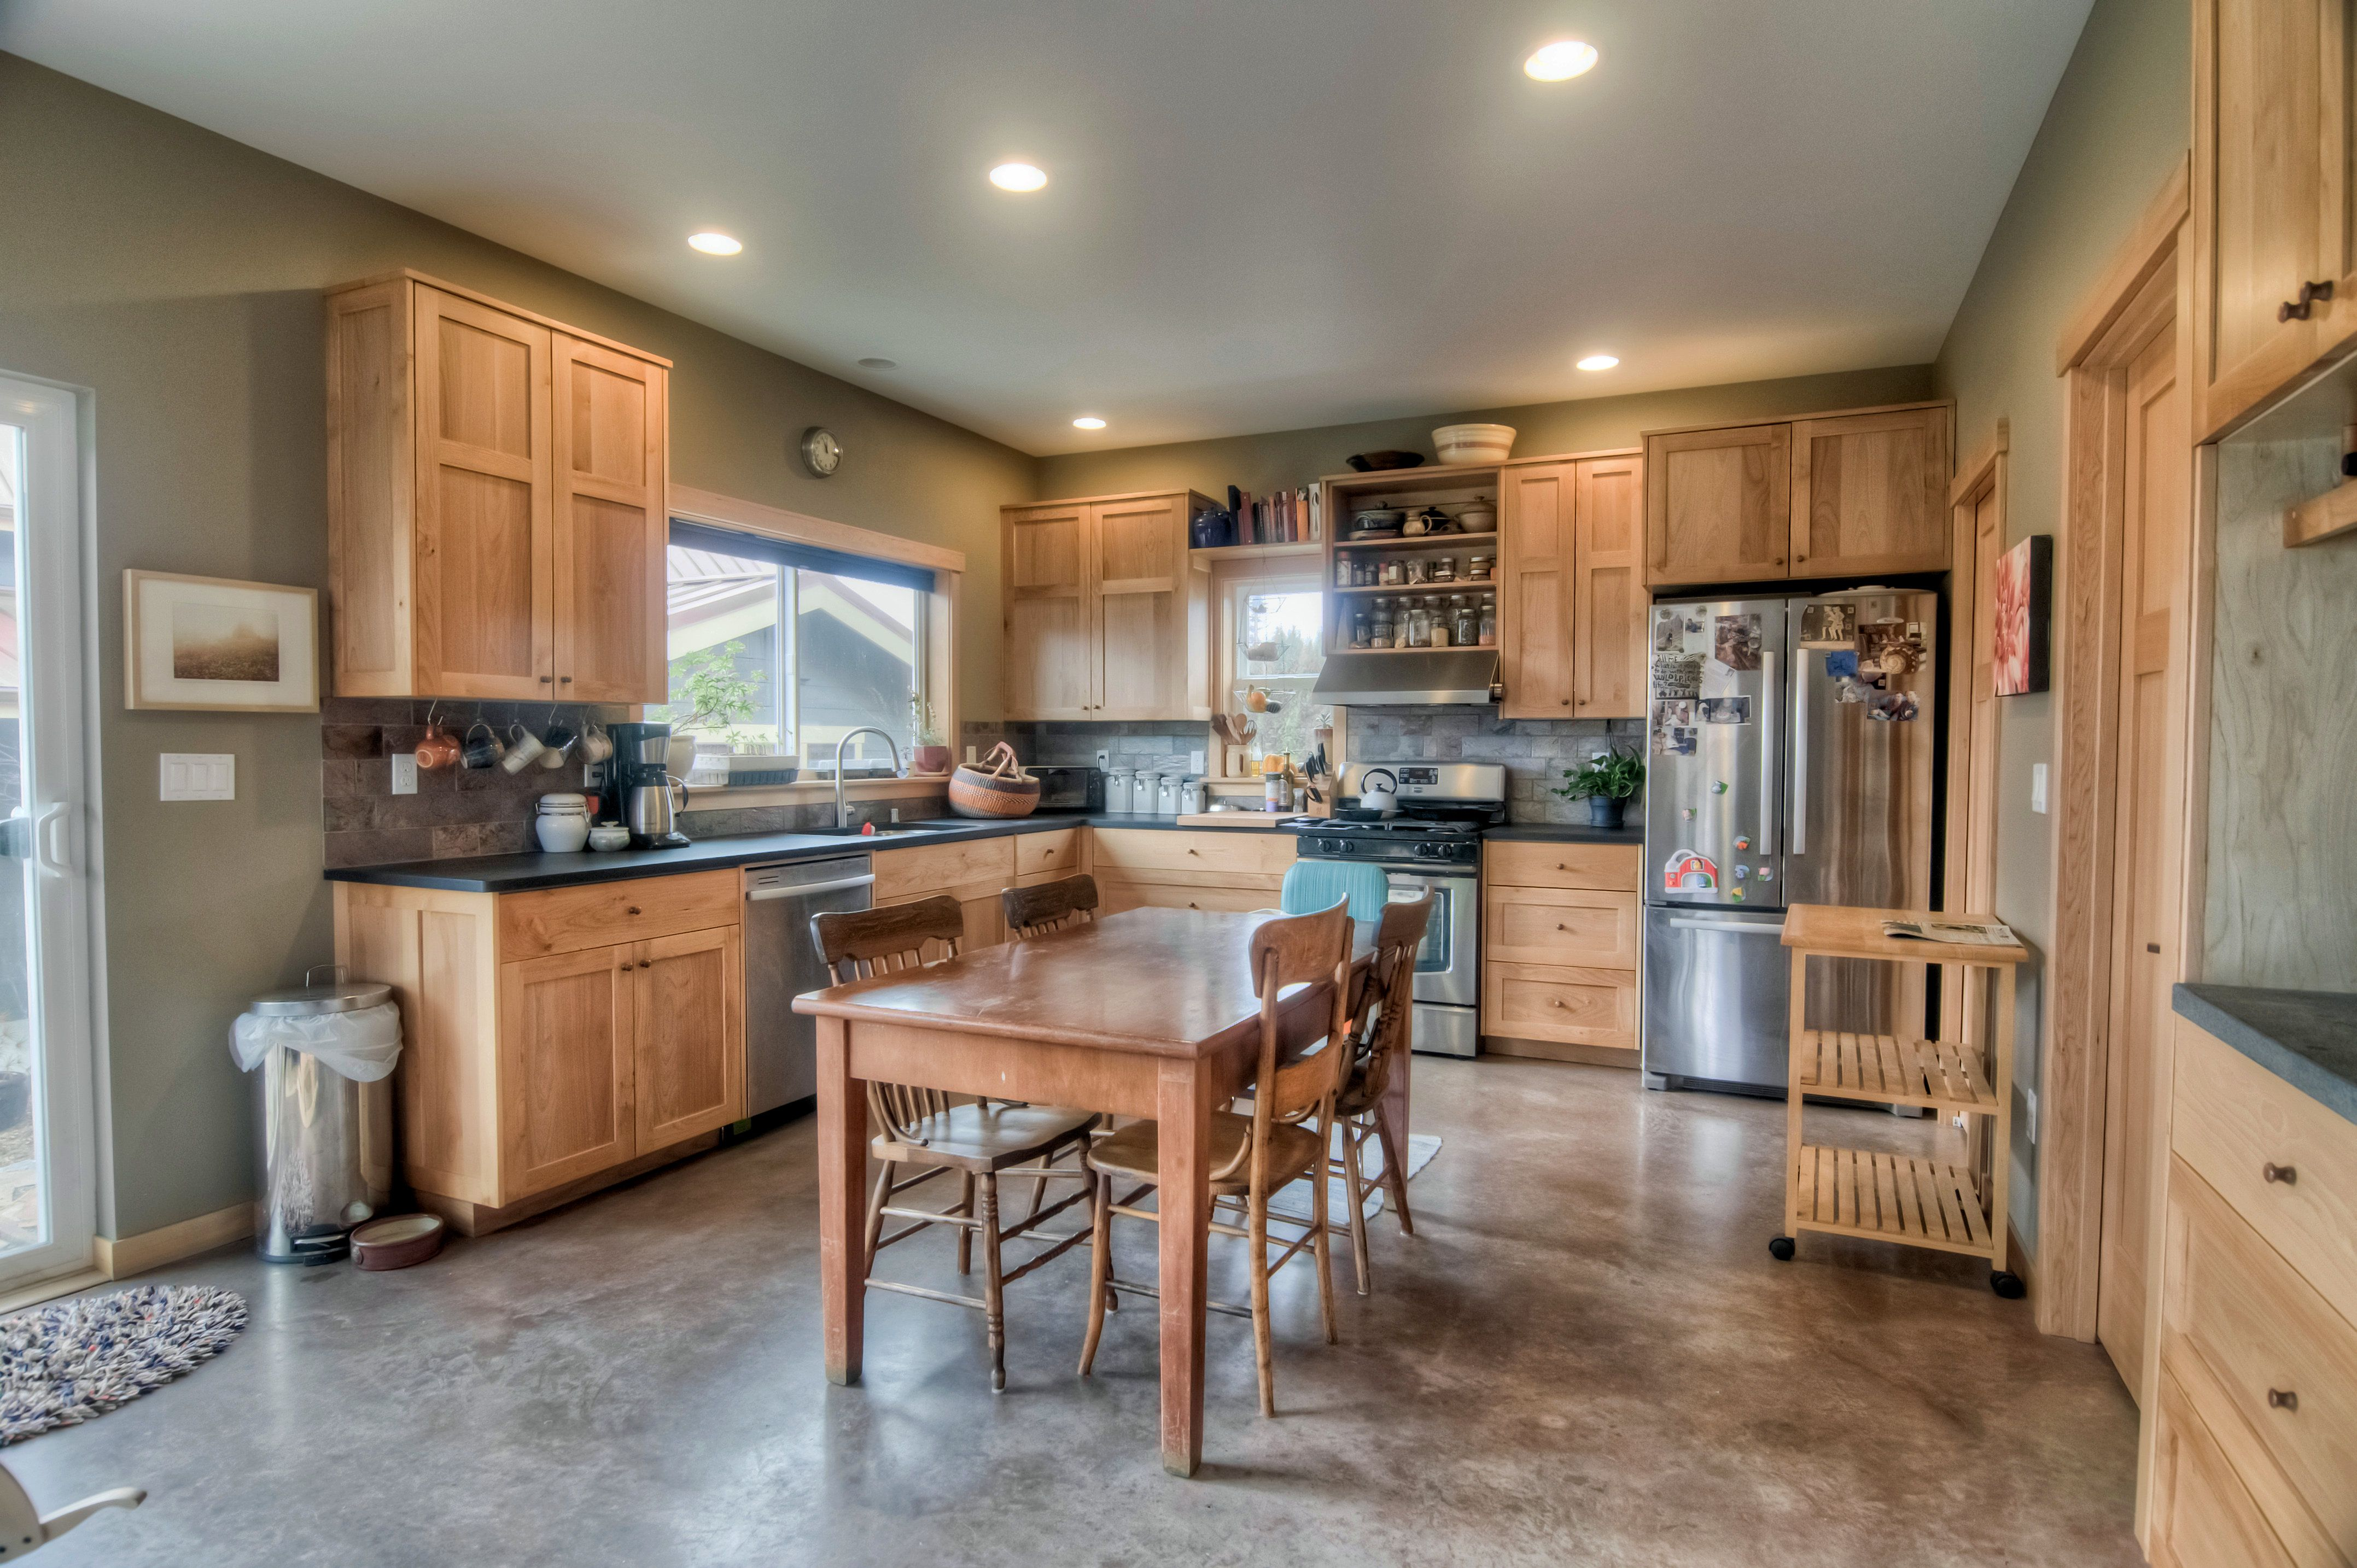 Custom Maple Kitchen Cabinets With Stone Tile Backsplash And Stained Concrete Floors Millw Stained Kitchen Cabinets Contemporary Kitchen Concrete Kitchen Floor